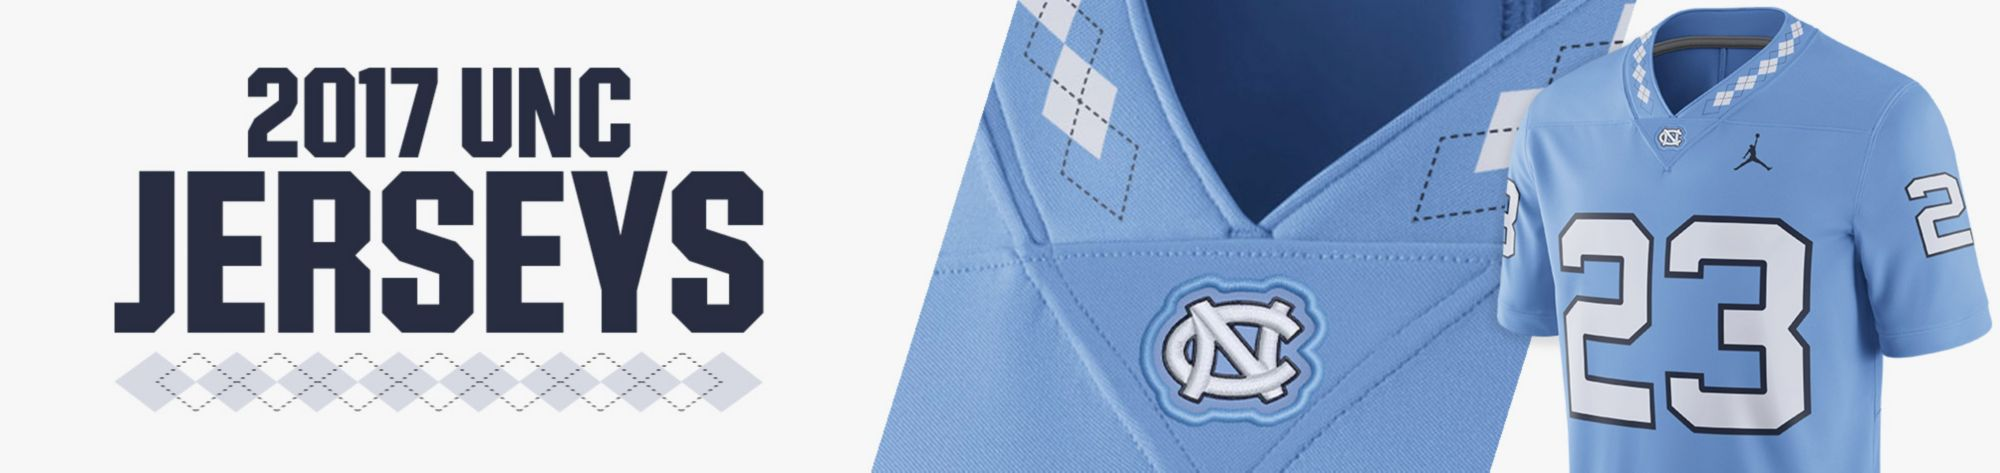 New 2017 UNC Jersey